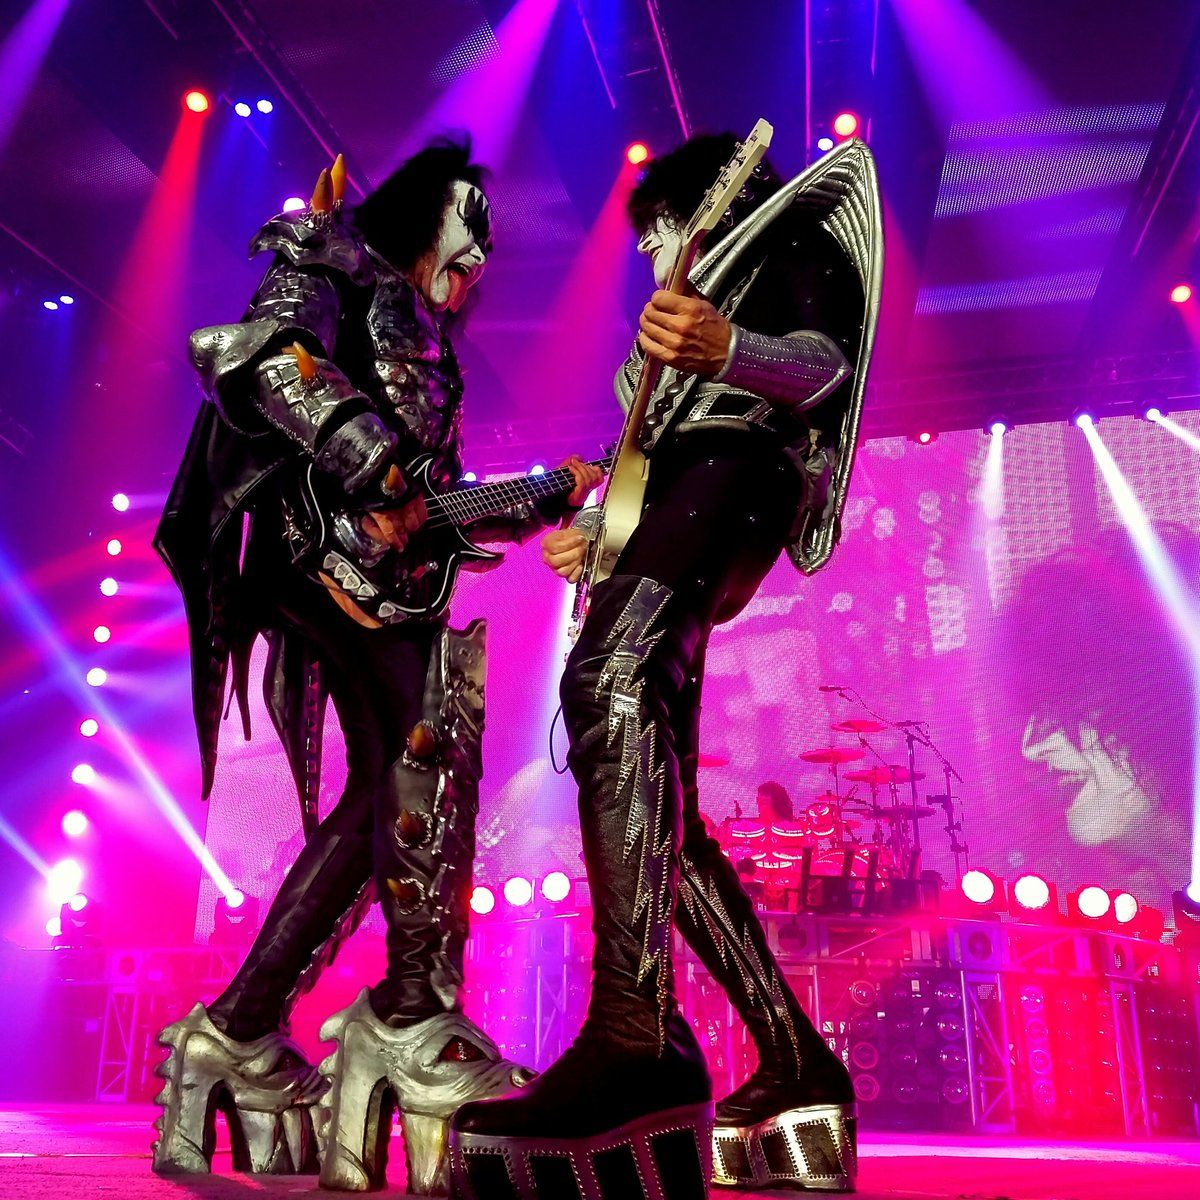 Gene Simmons and Tommy Thayer